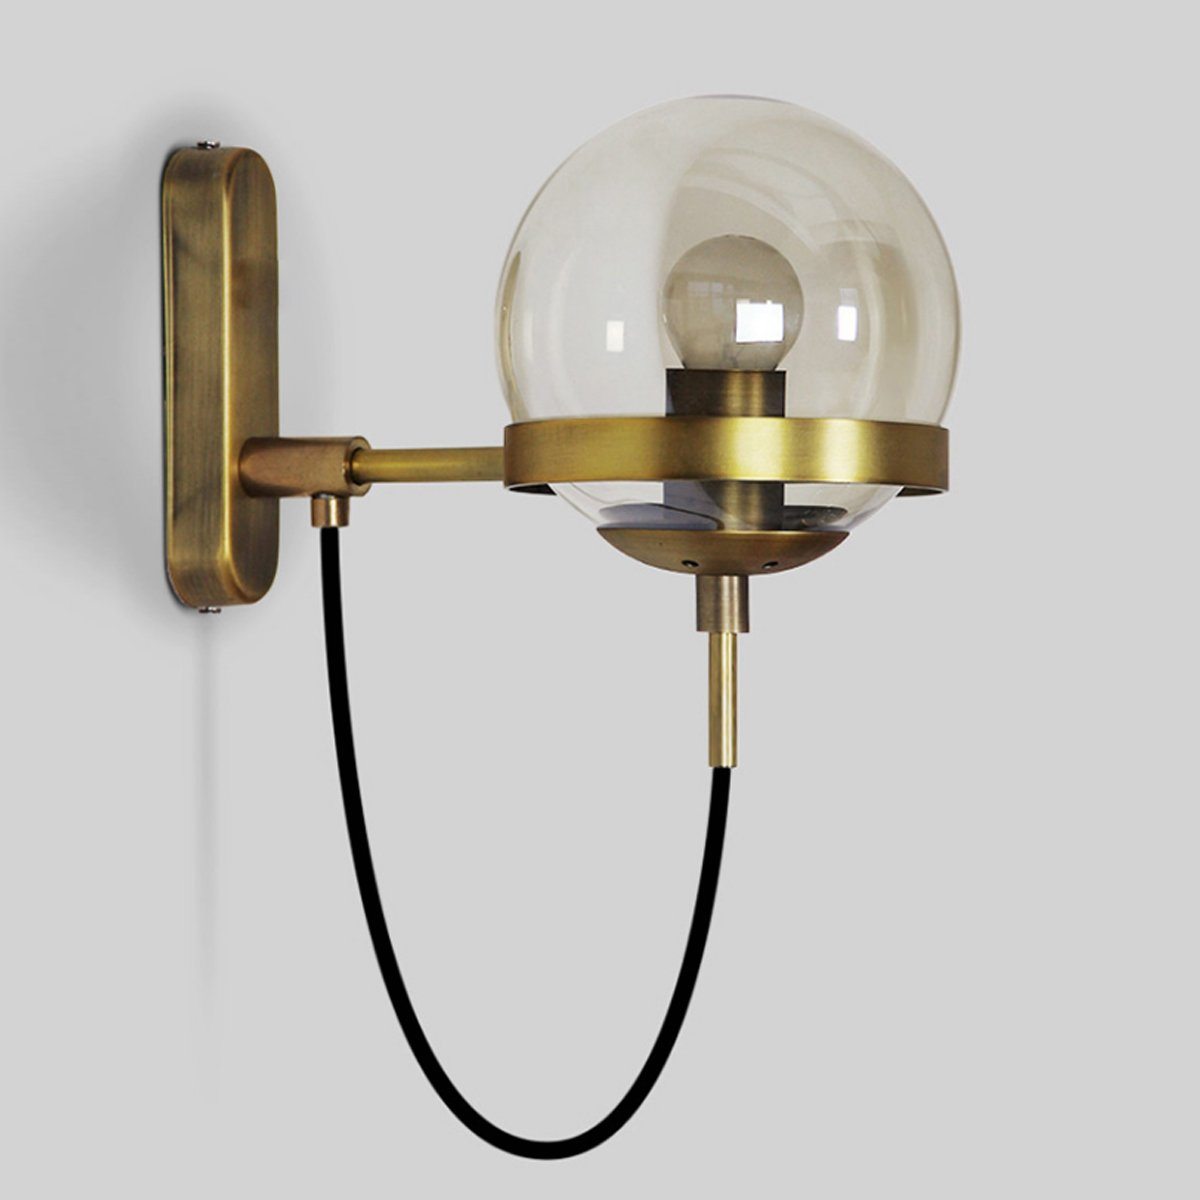 MASO Home MS-62013 Retro Sphere Shape Bedside Lamp Bedroom Wall Lamp Simple Cozy Room Glass Ball Wall Sconce (Bronze)